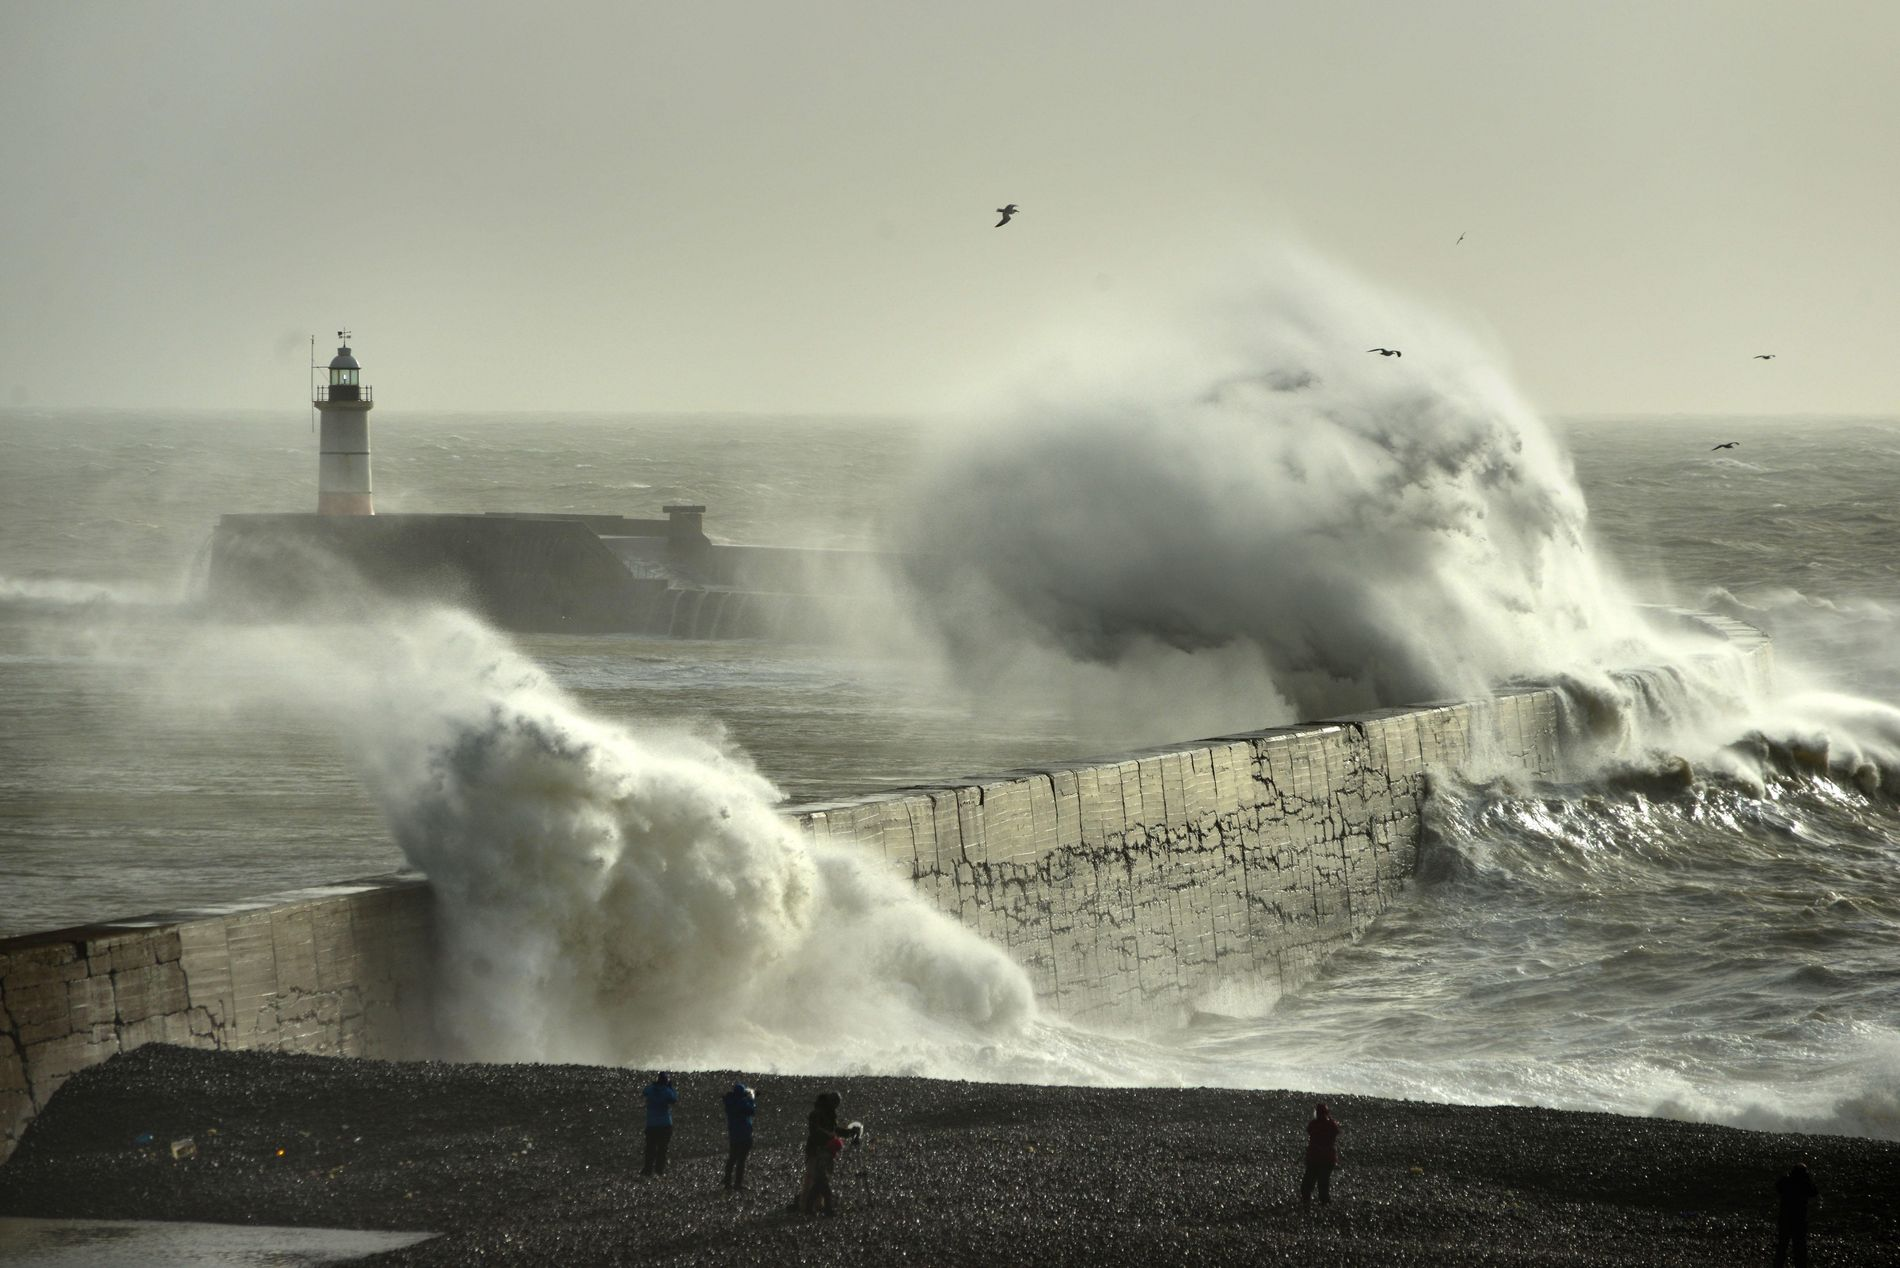 Storm Eleanor batters Newhaven, January 2018, with 100 mph windstorms generating huge swells and cutting power ...